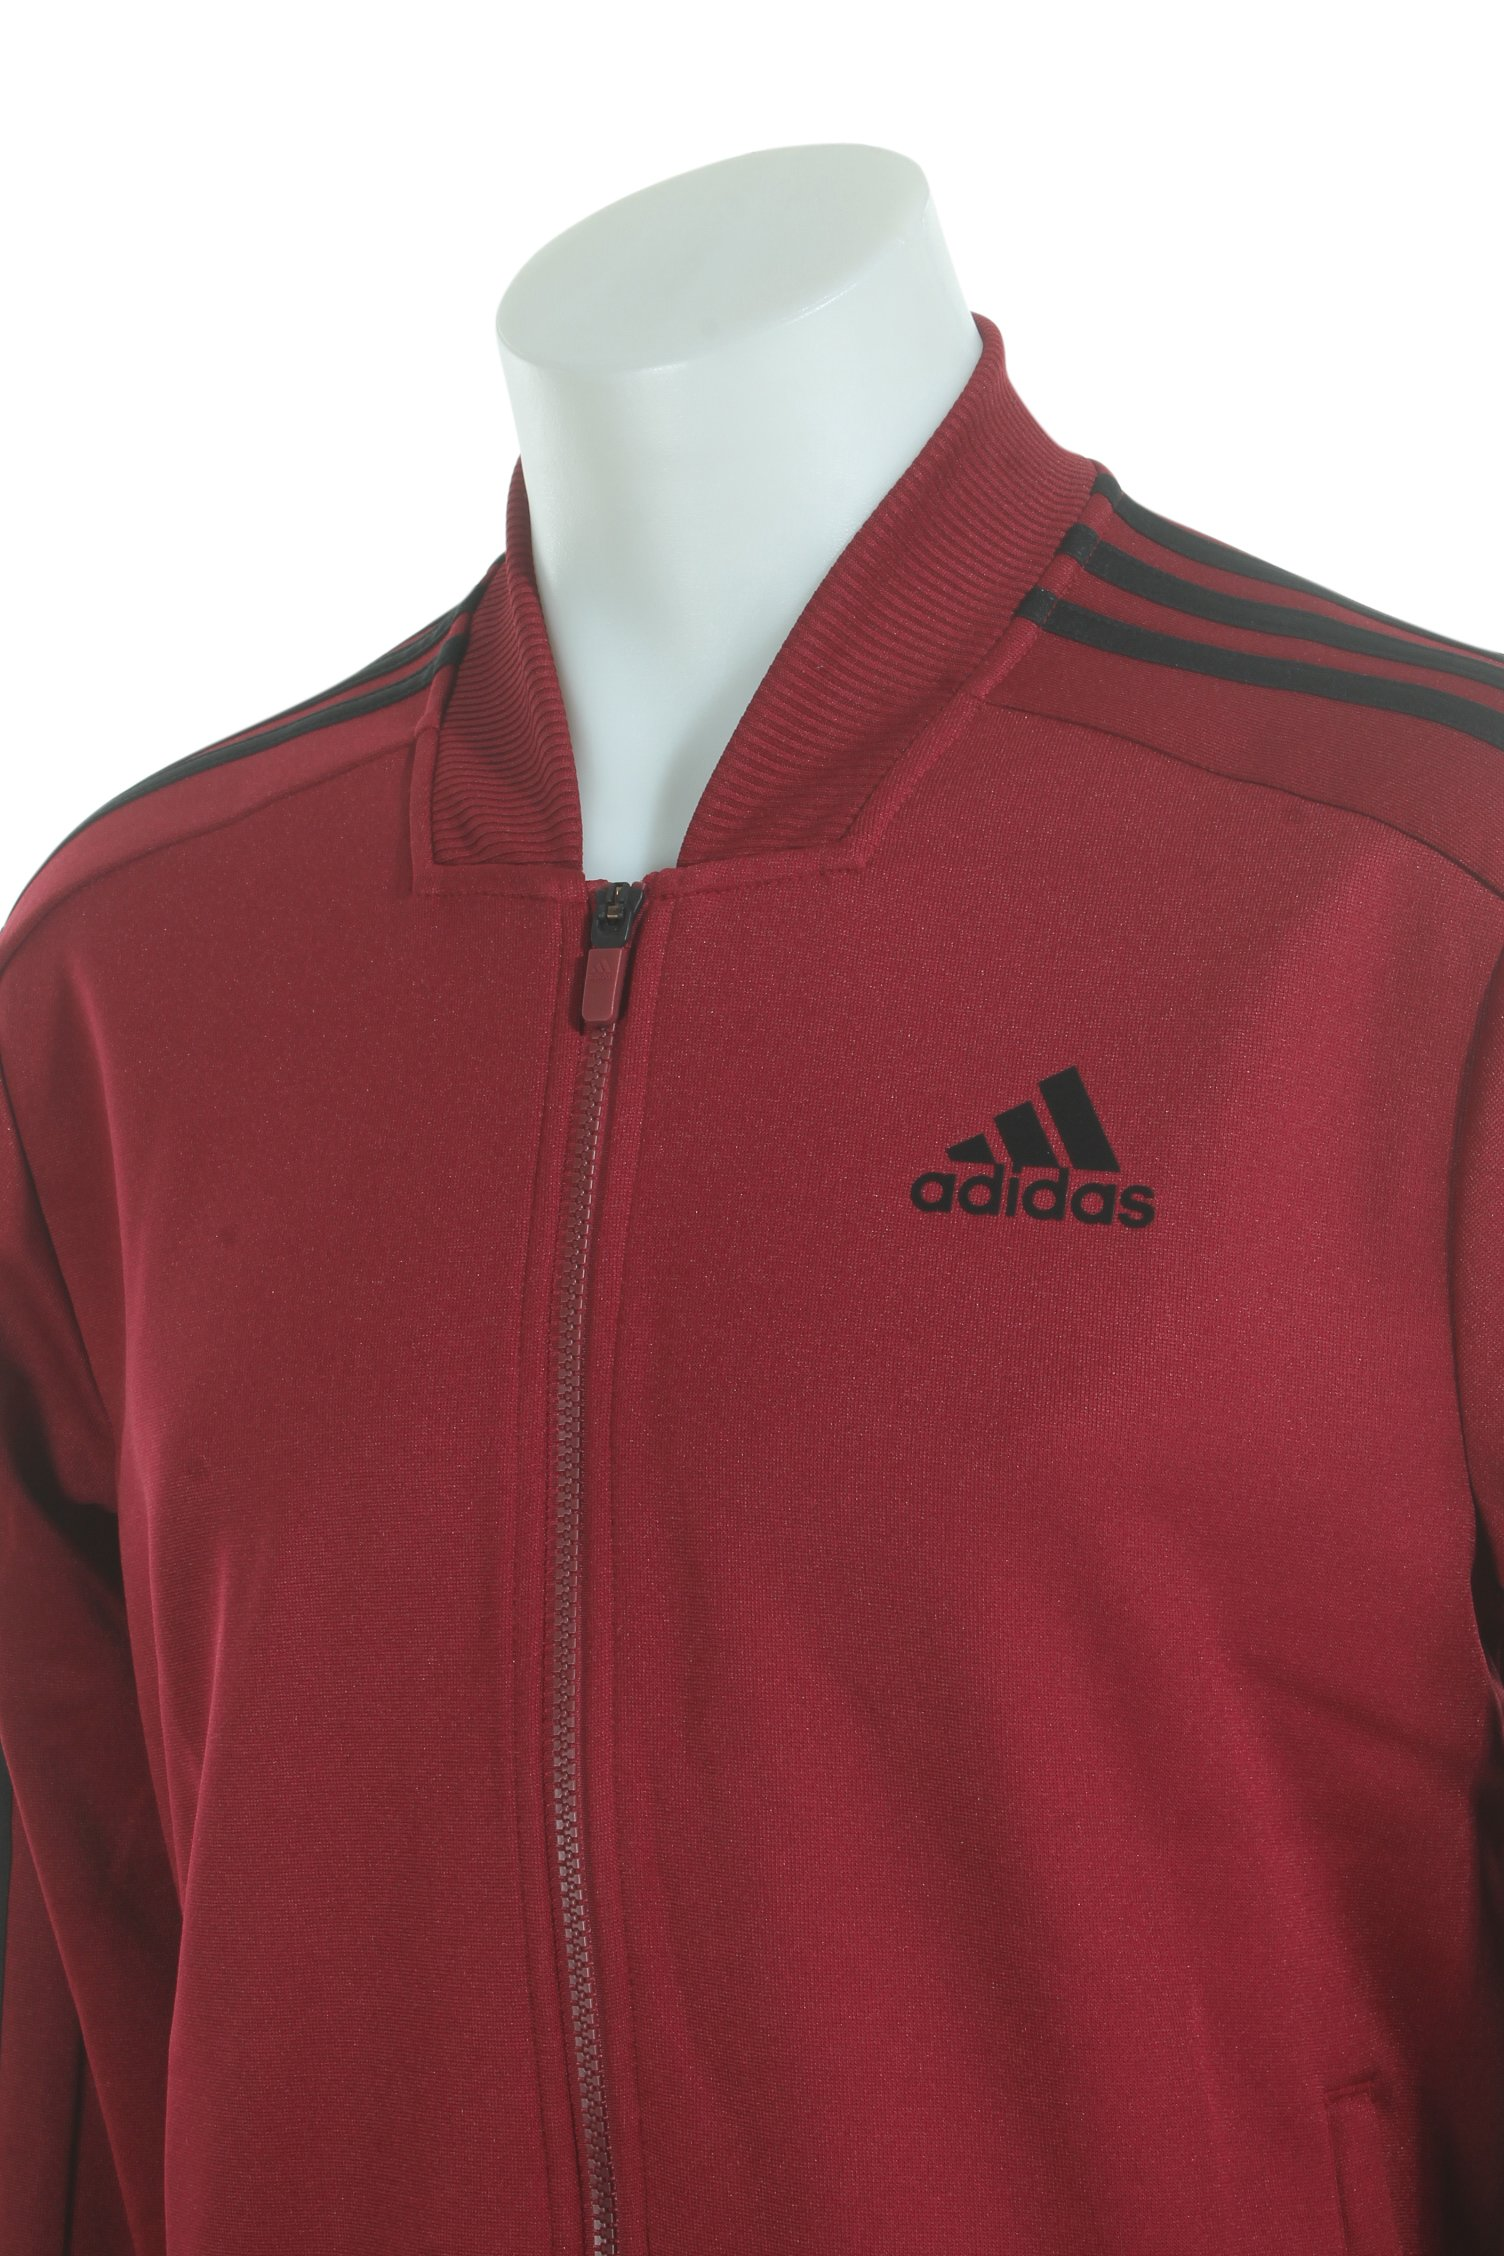 adidas Men's Sport ID Track Bomber Jacket Collegiate Burgundy Small by adidas (Image #3)